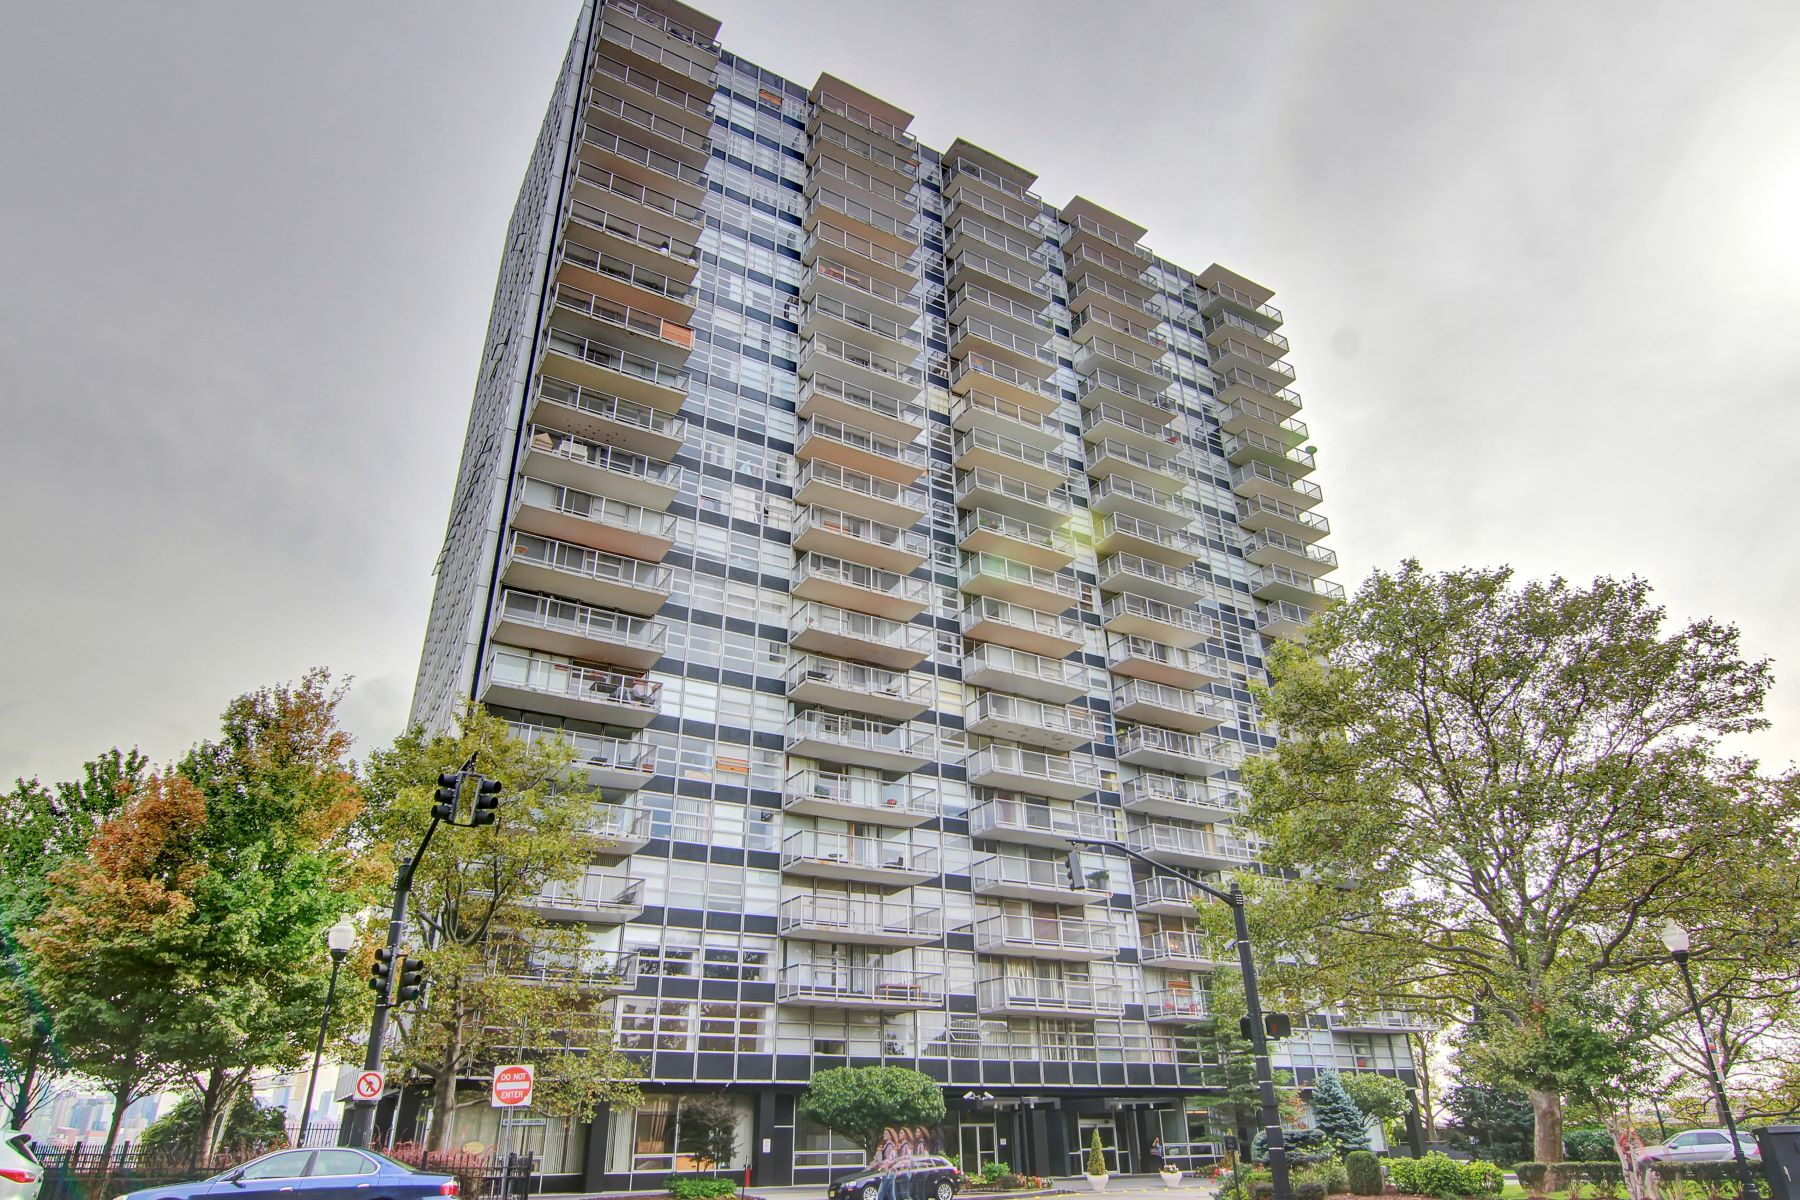 Condominio por un Venta en Tower West 6050 Blvd East 3G West New York, Nueva Jersey 07093 Estados Unidos